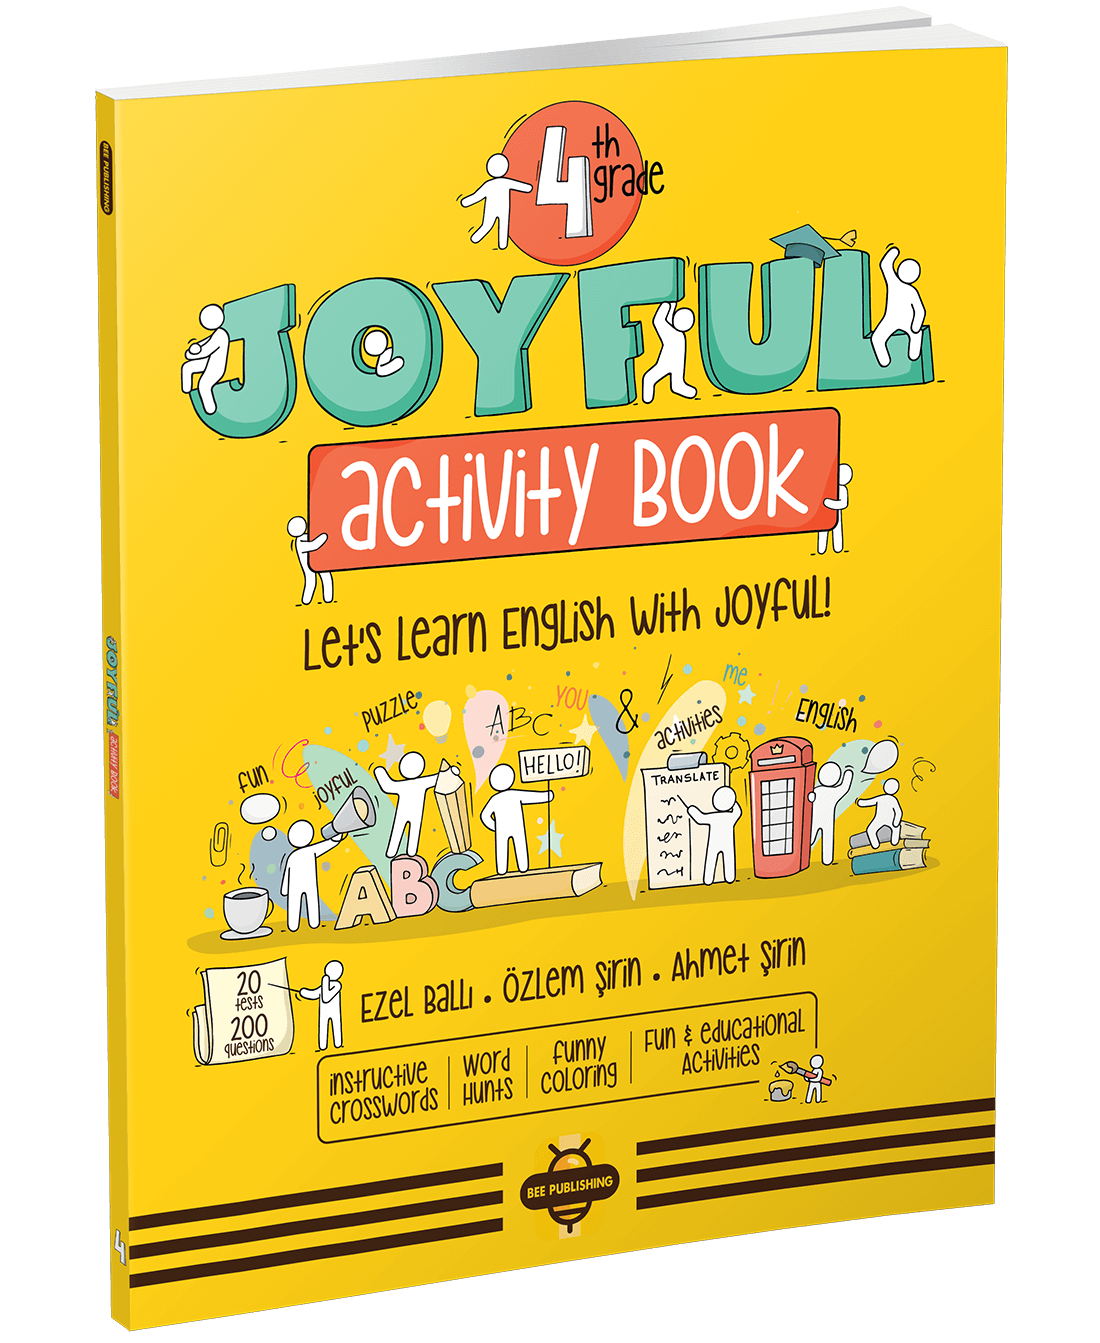 Joyful Activity Book 4. Sınıf